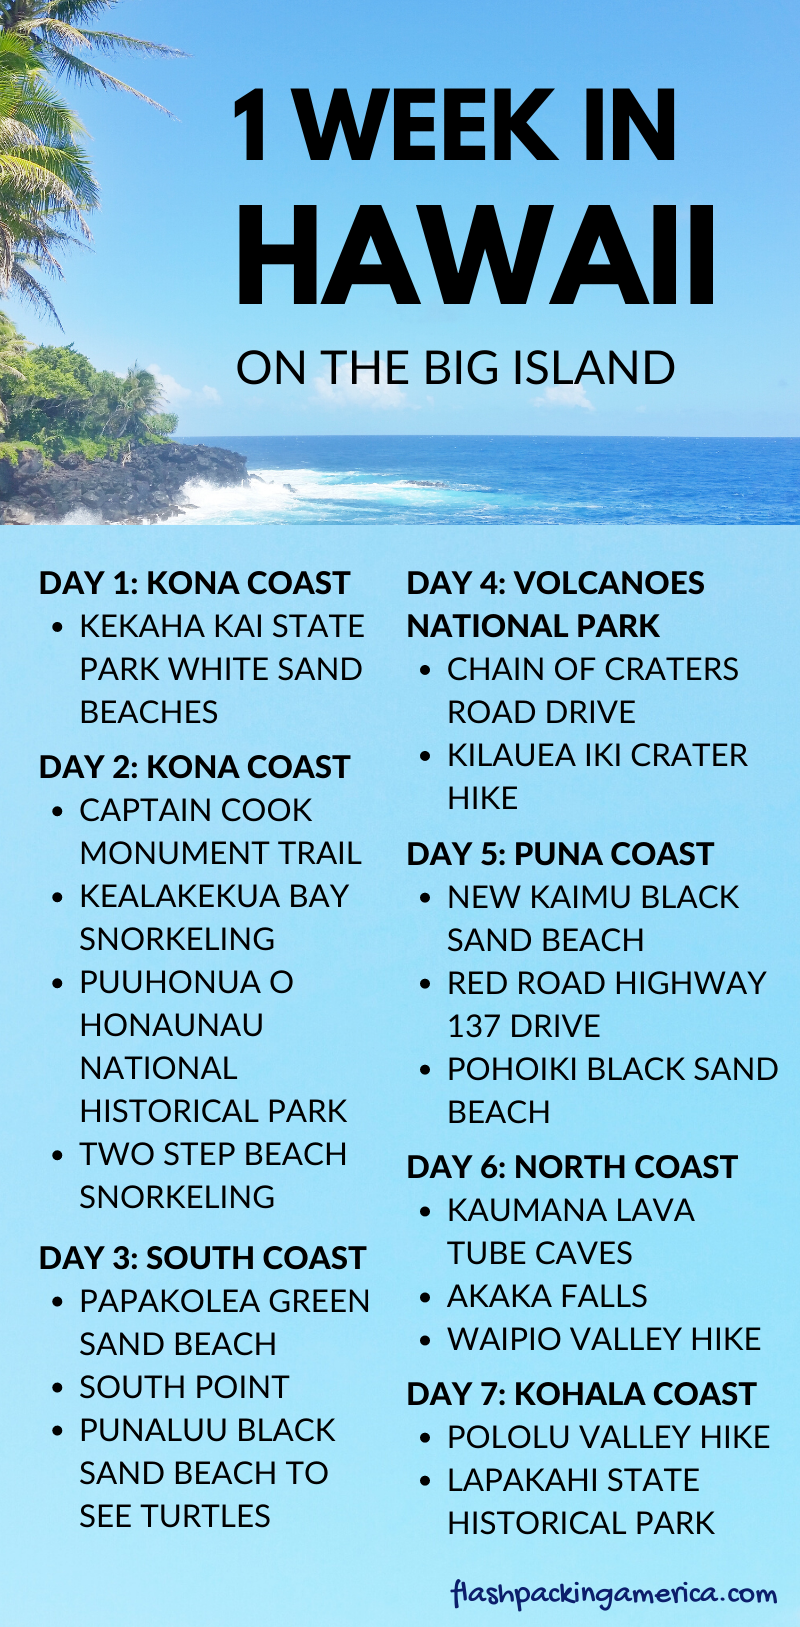 Things to do in Hawaii for first trip to the Big Island list - 1 week US vacation ideas